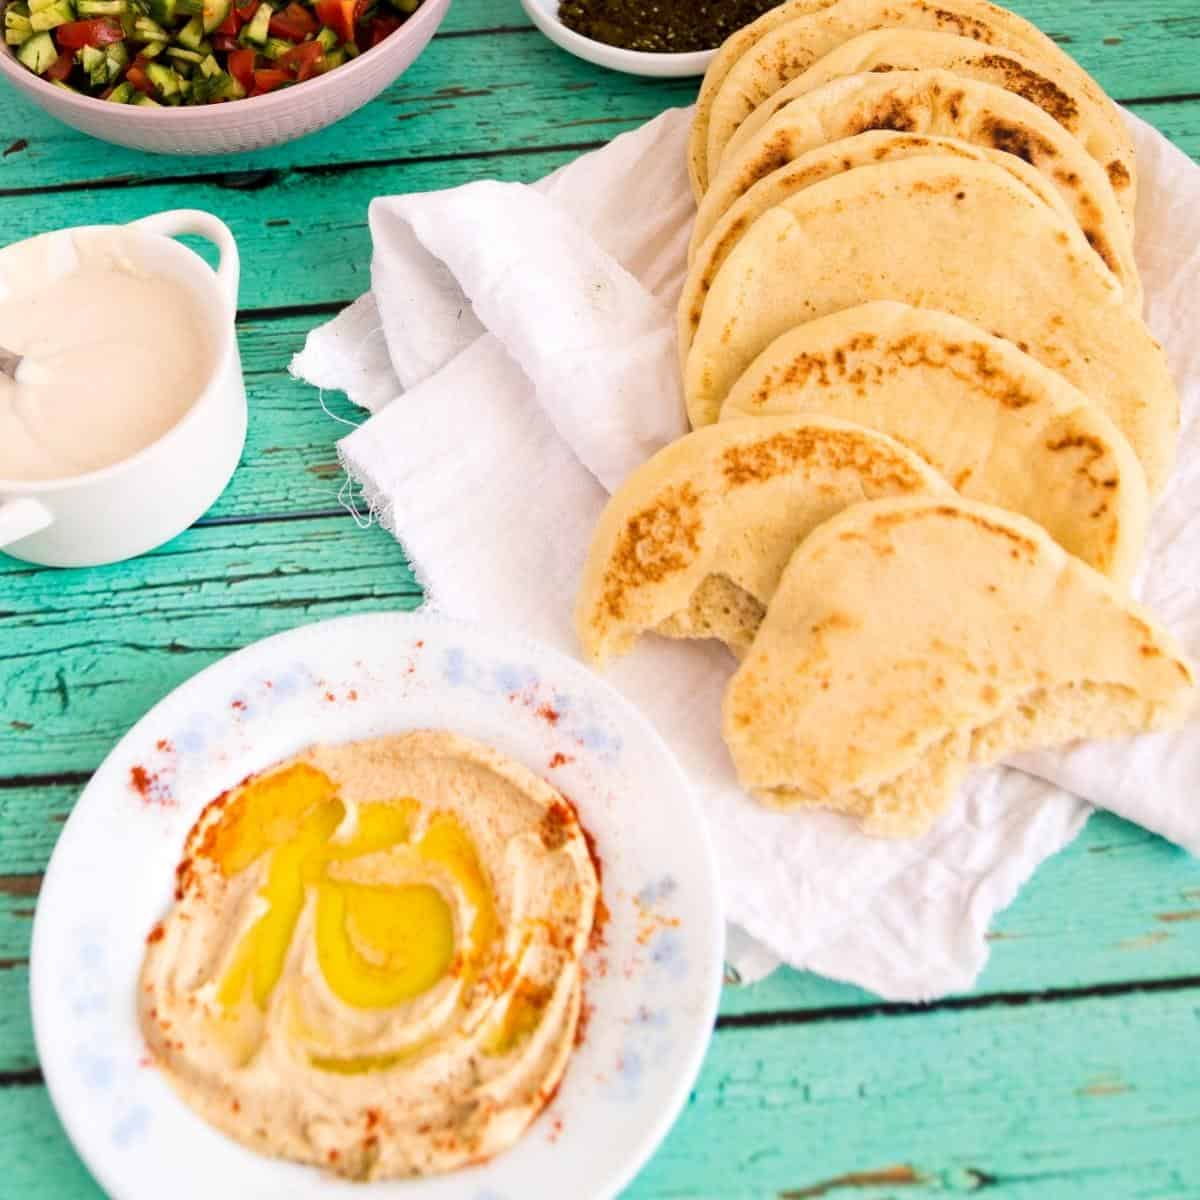 Hummus and pita bread on a table.